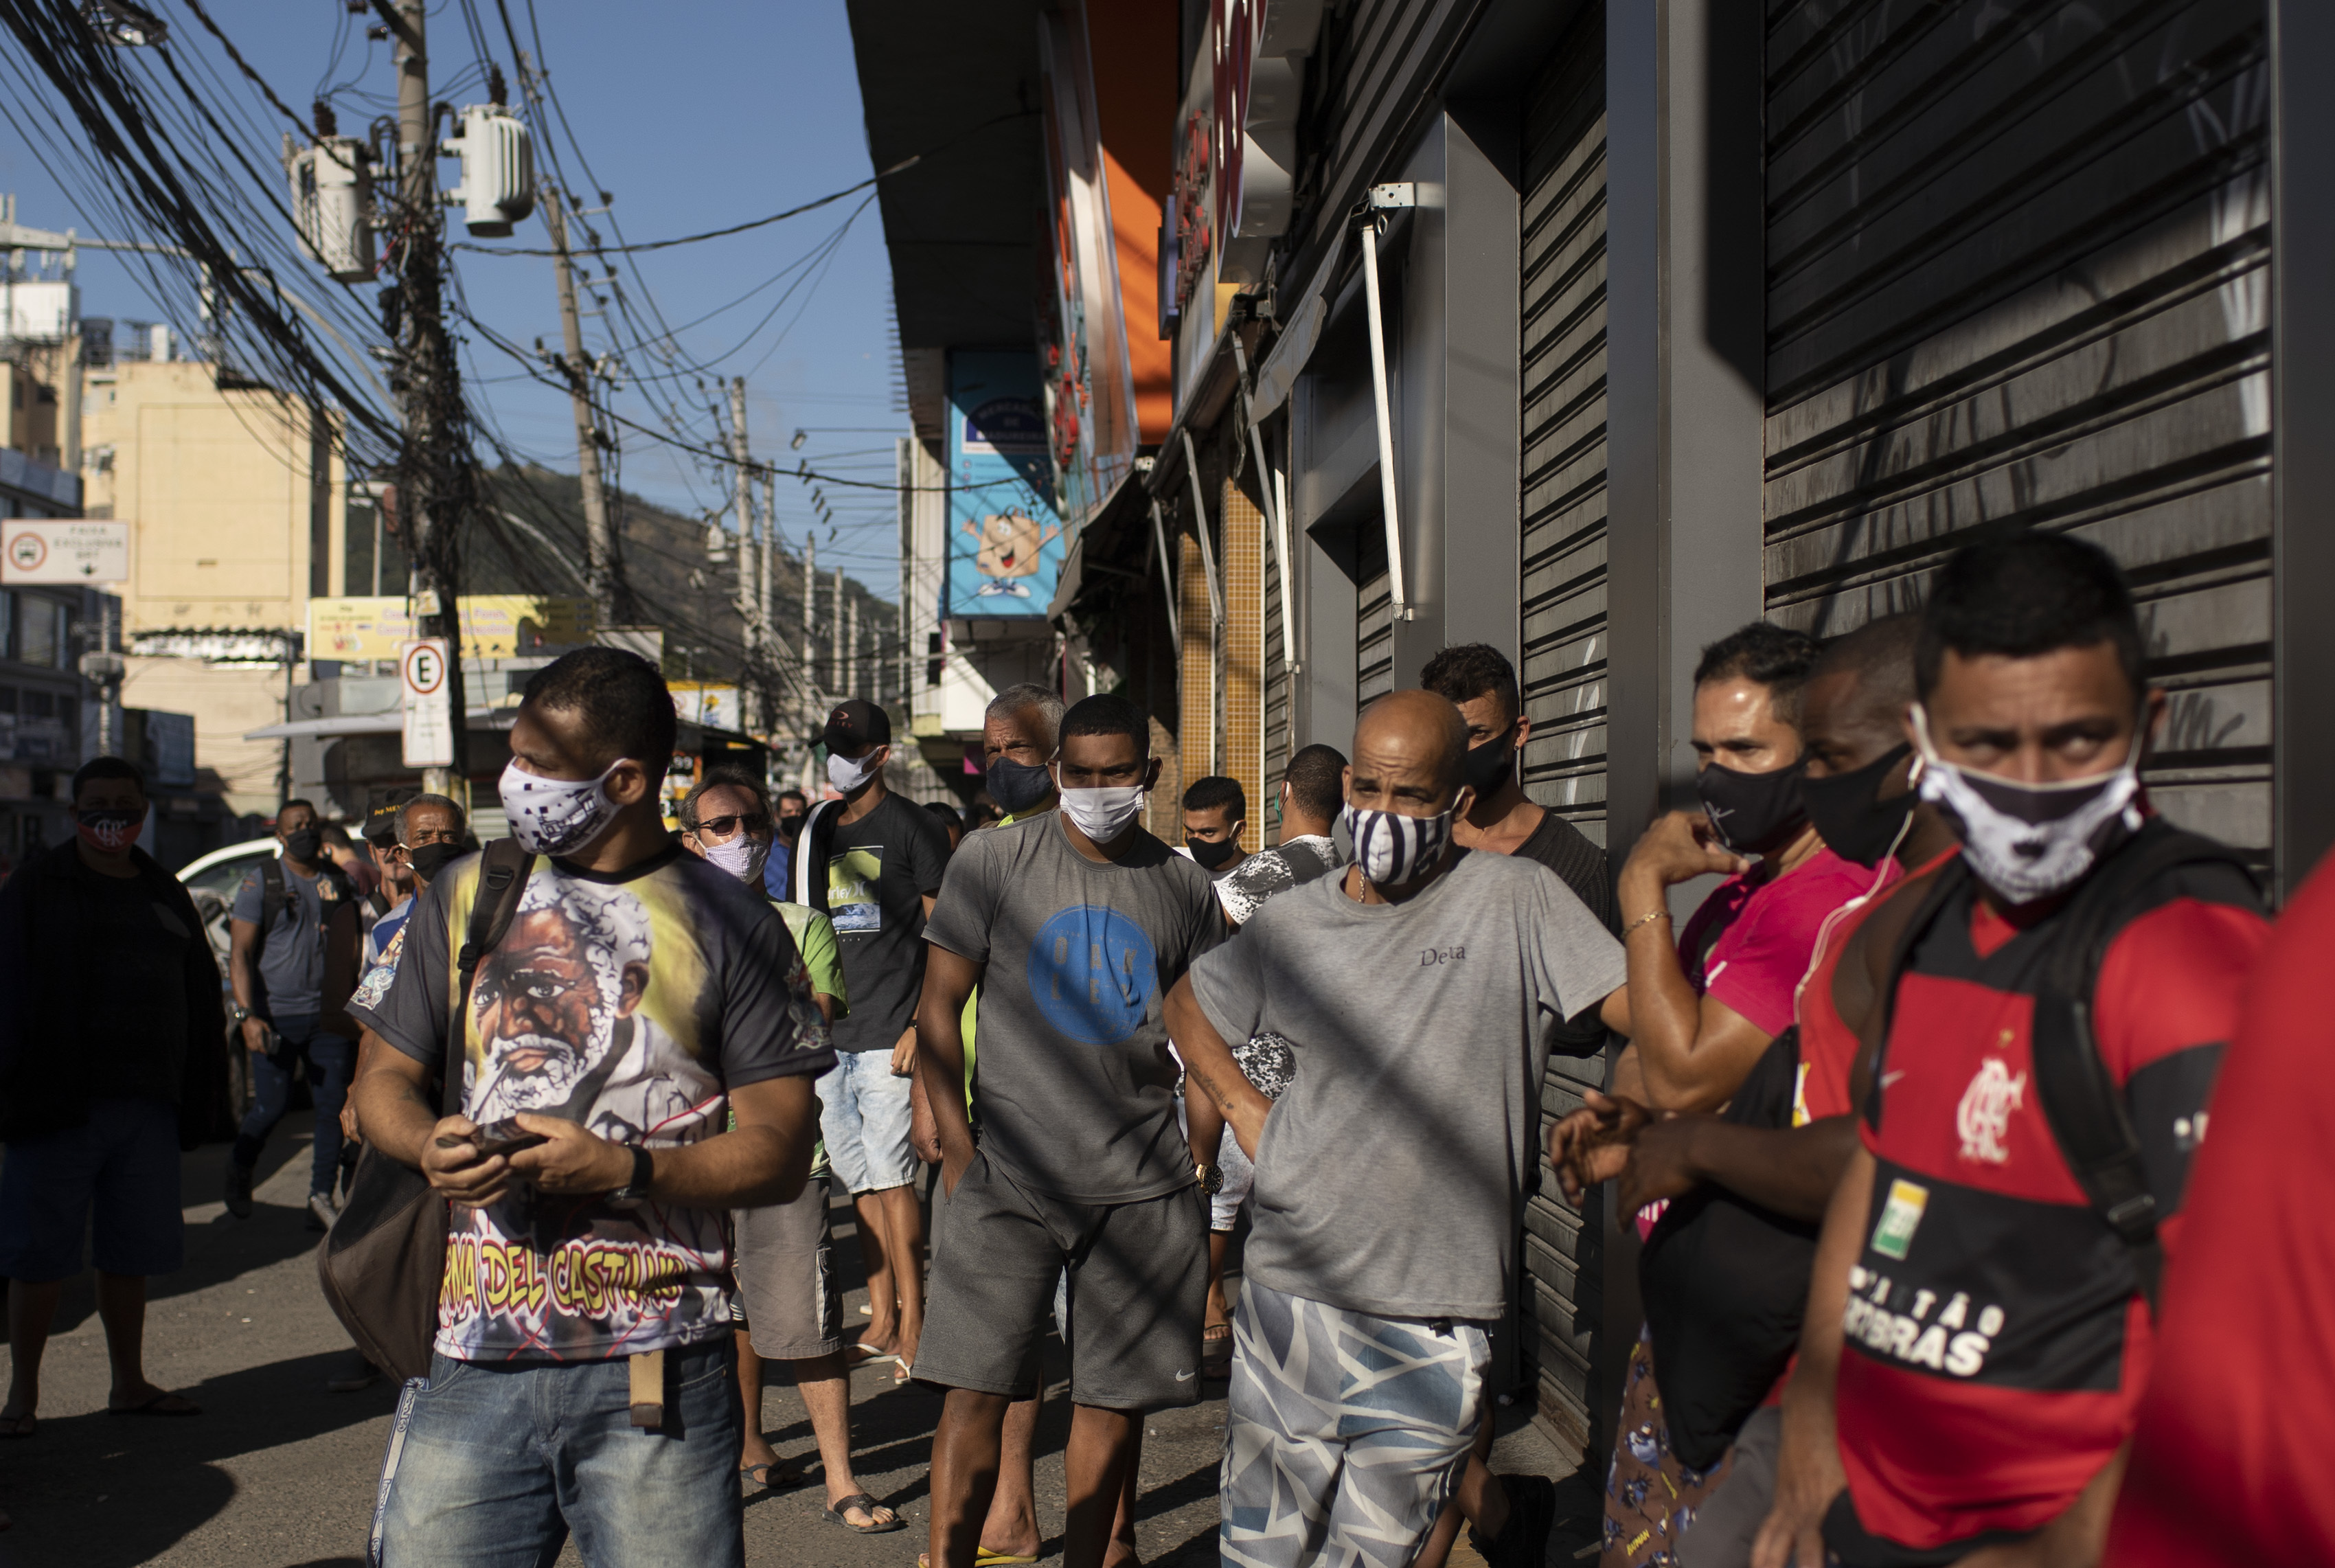 Customers wait to enter the Madureira Market in Rio de Janeiro, Brazil, Wednesday, June 17, 2020. Rio continues with its plan to ease restrictive measures and open the economy to avoid an even worse economic crisis, amid the new coronavirus pandemic. (AP Photo/Silvia Izquierdo)